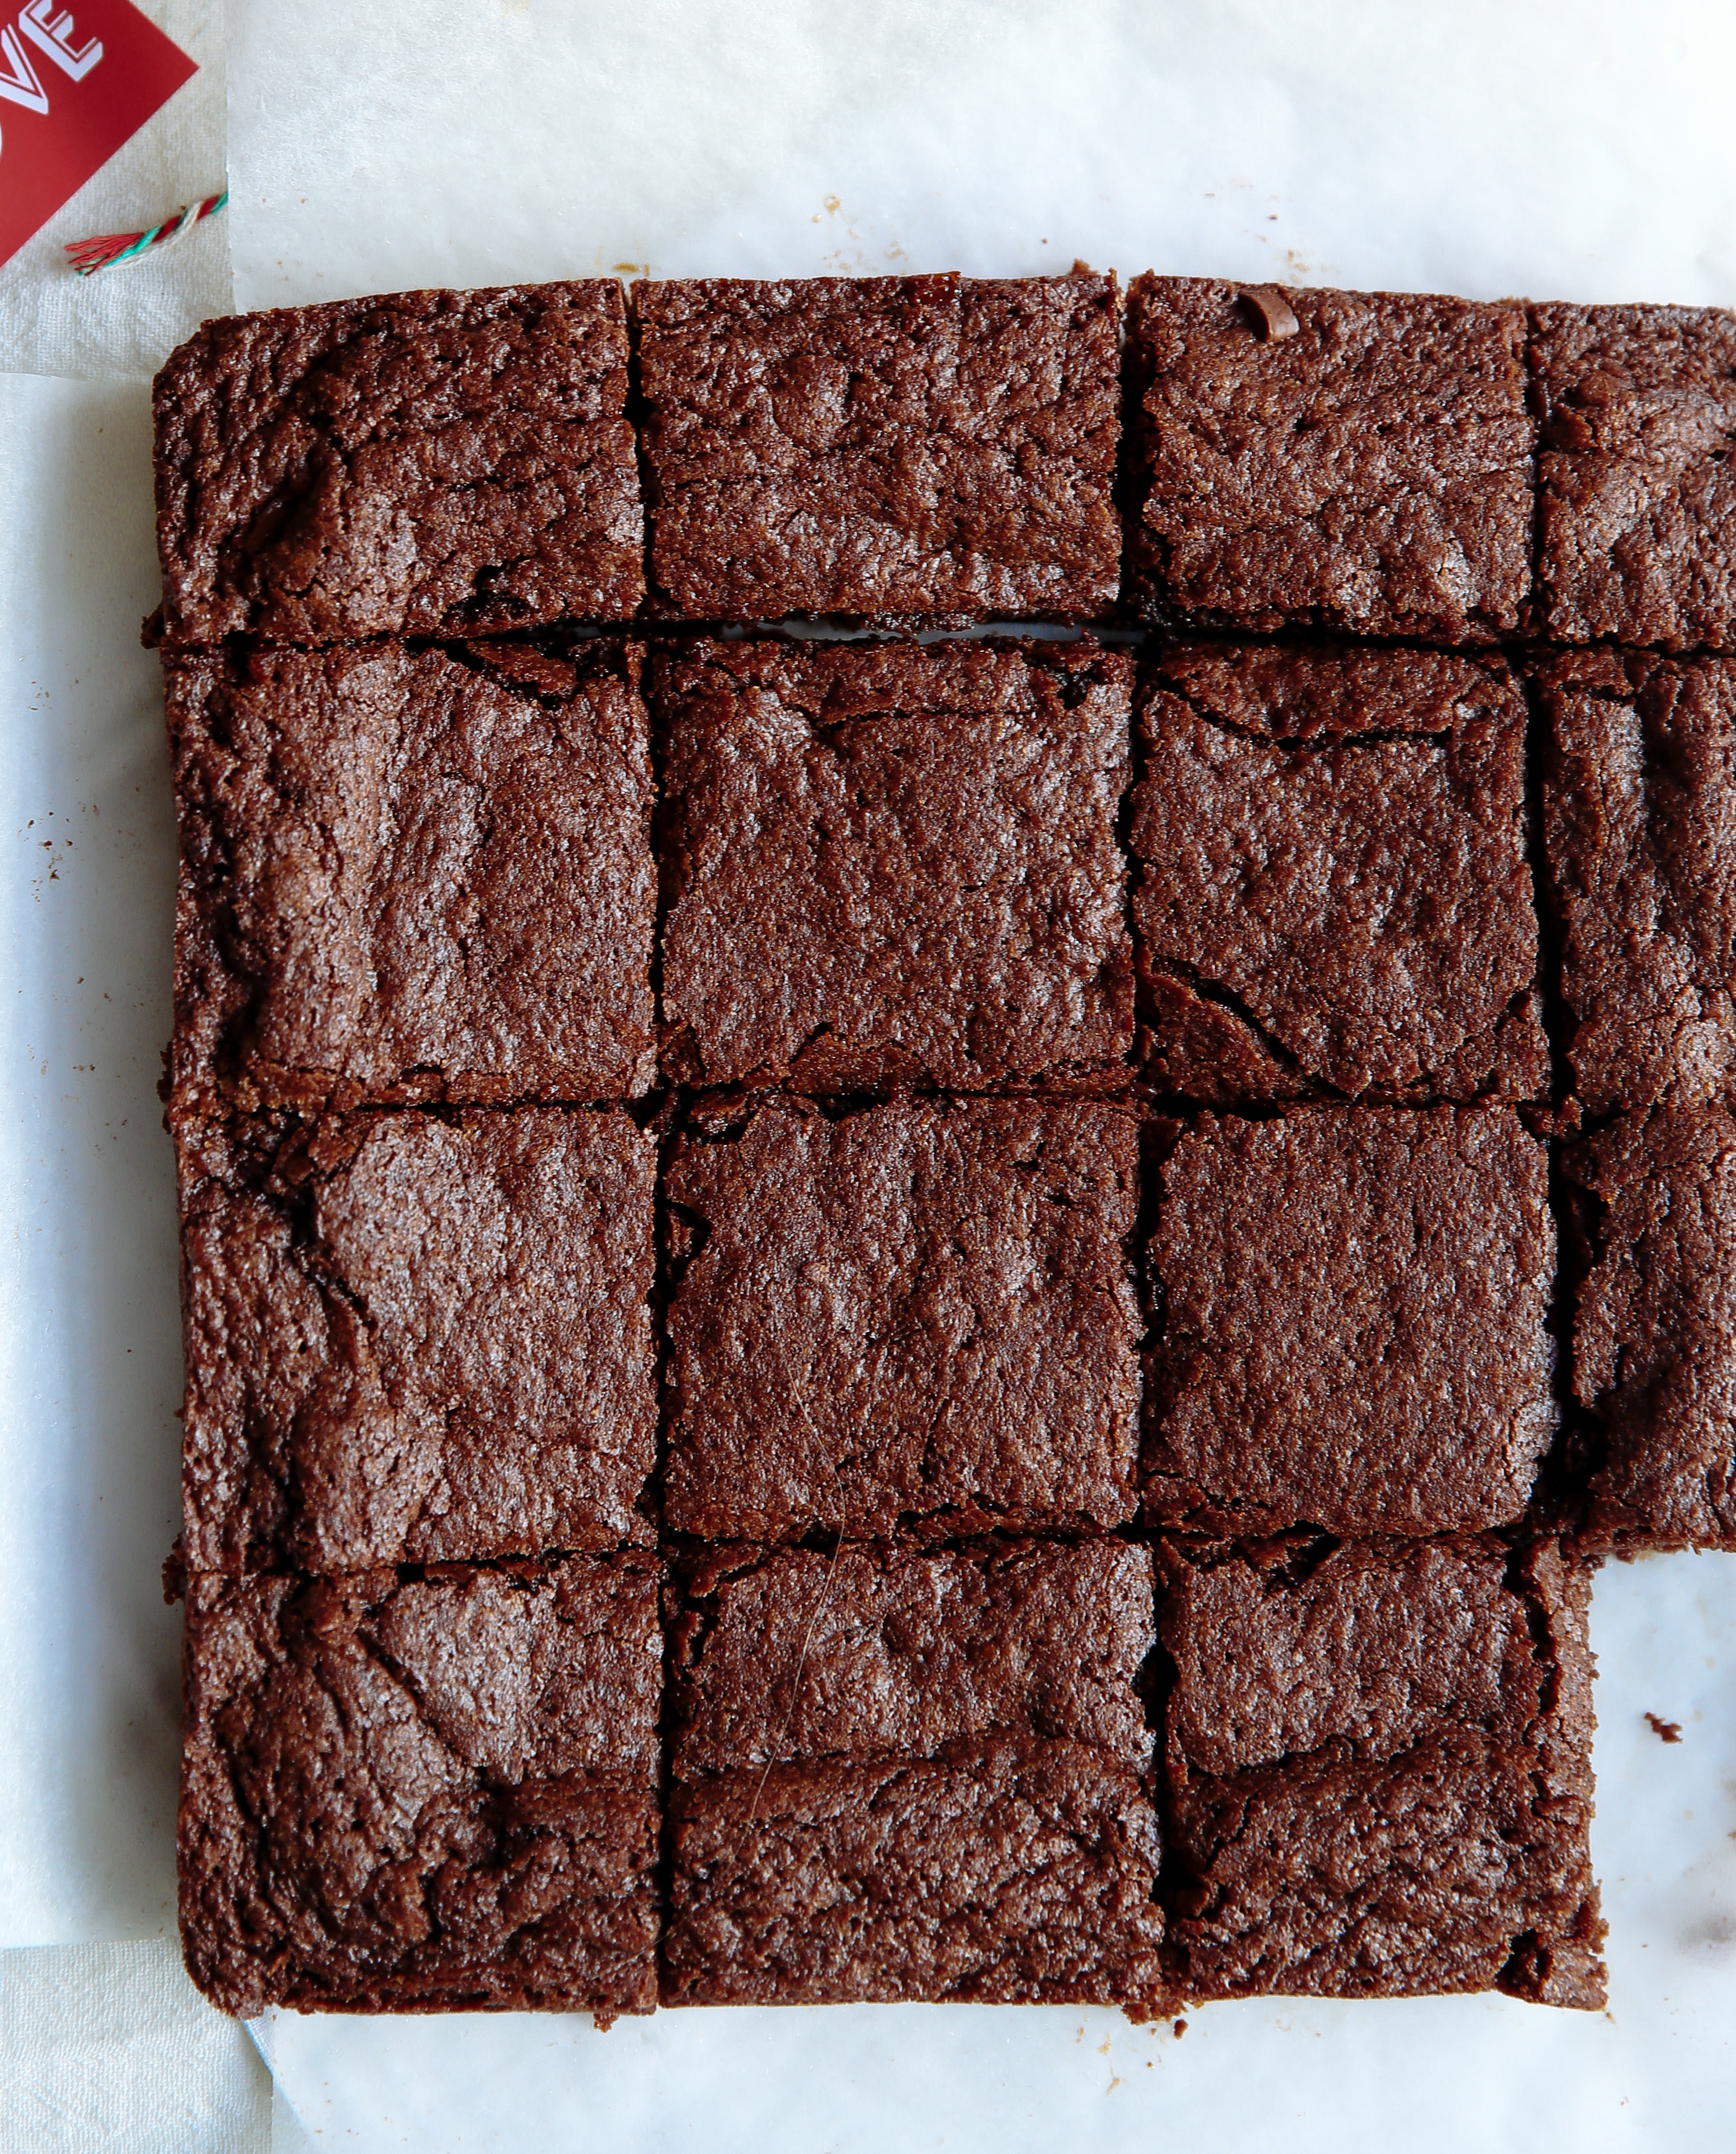 caramel-cinnamon-dark-chocolate-brownies